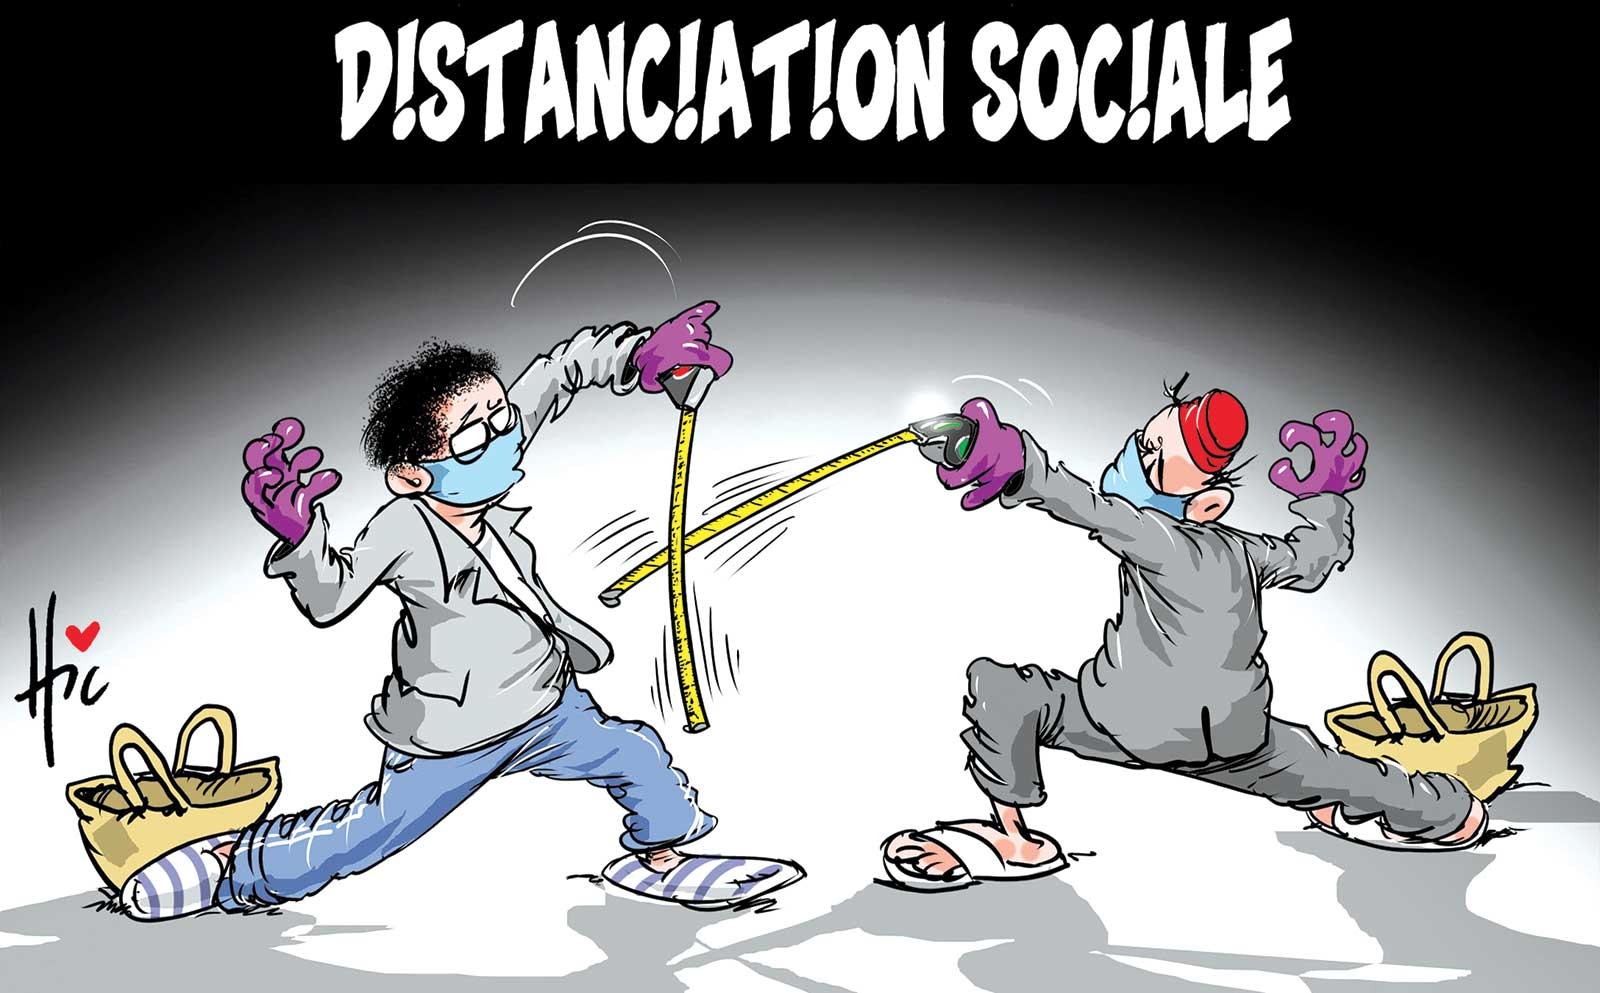 Distanciation sociale - Dessins et Caricatures, Le Hic - El Watan - Gagdz.com